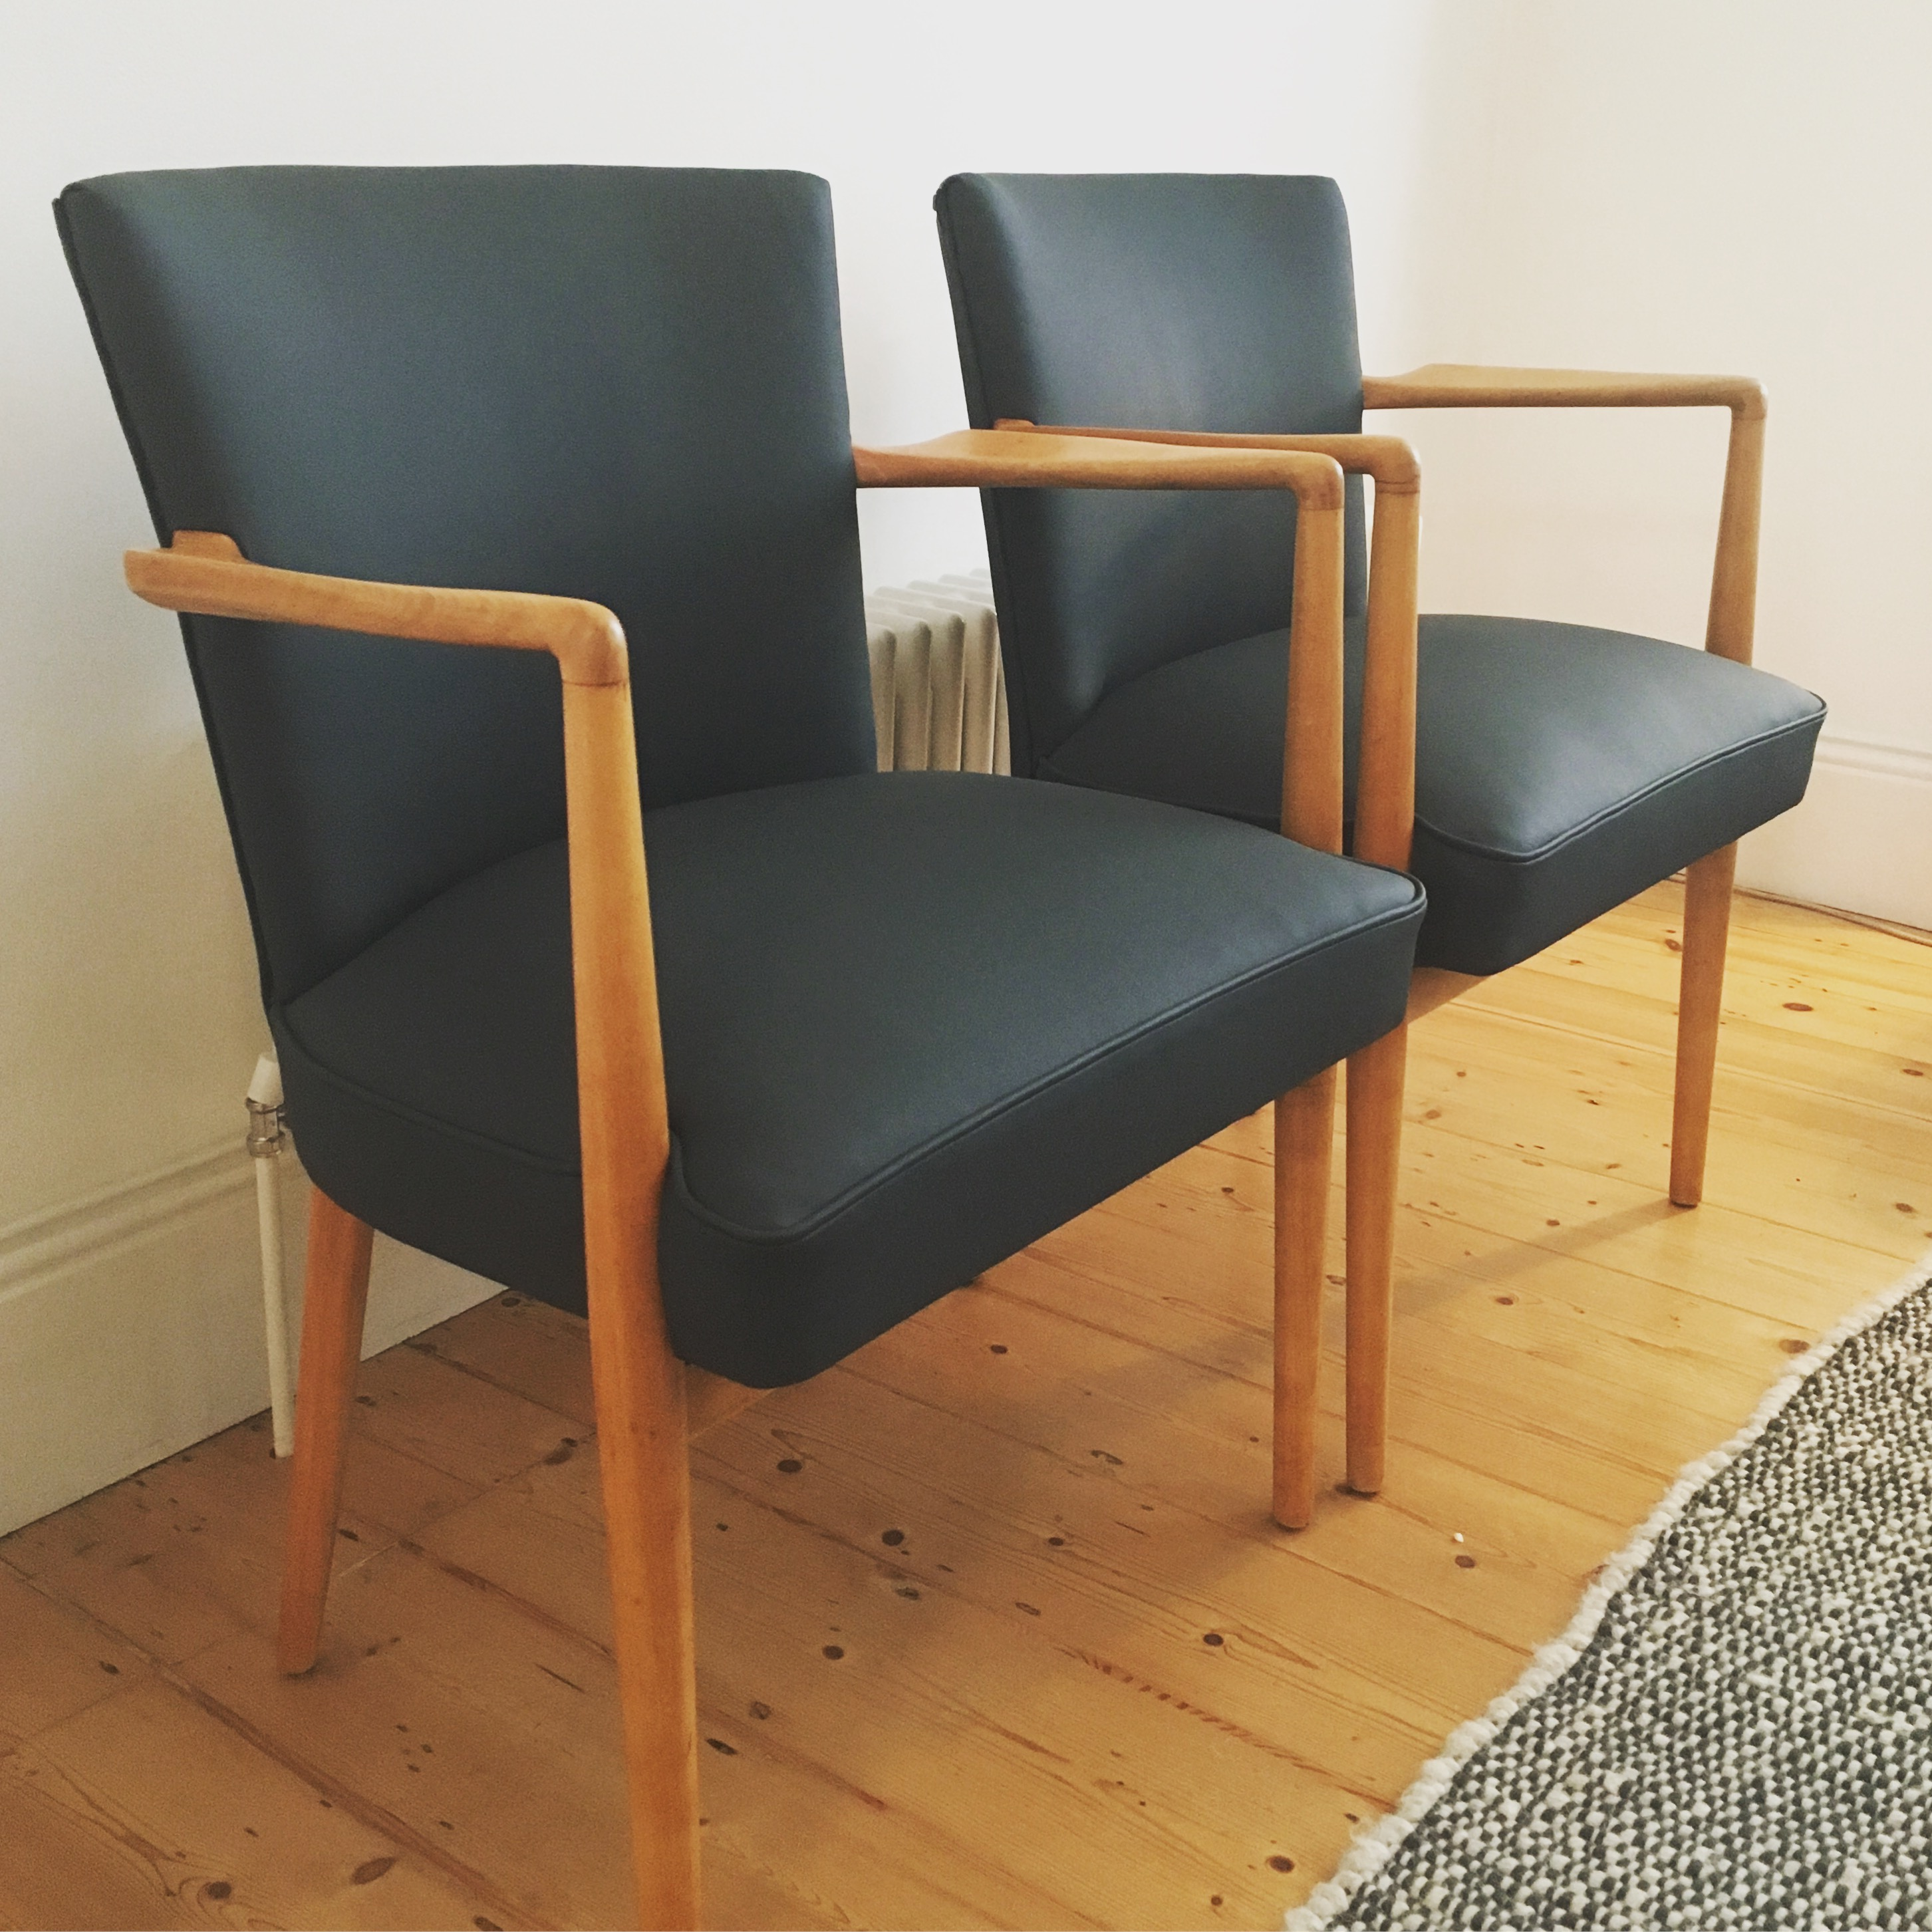 Pair of leather Danish chairs.jpg